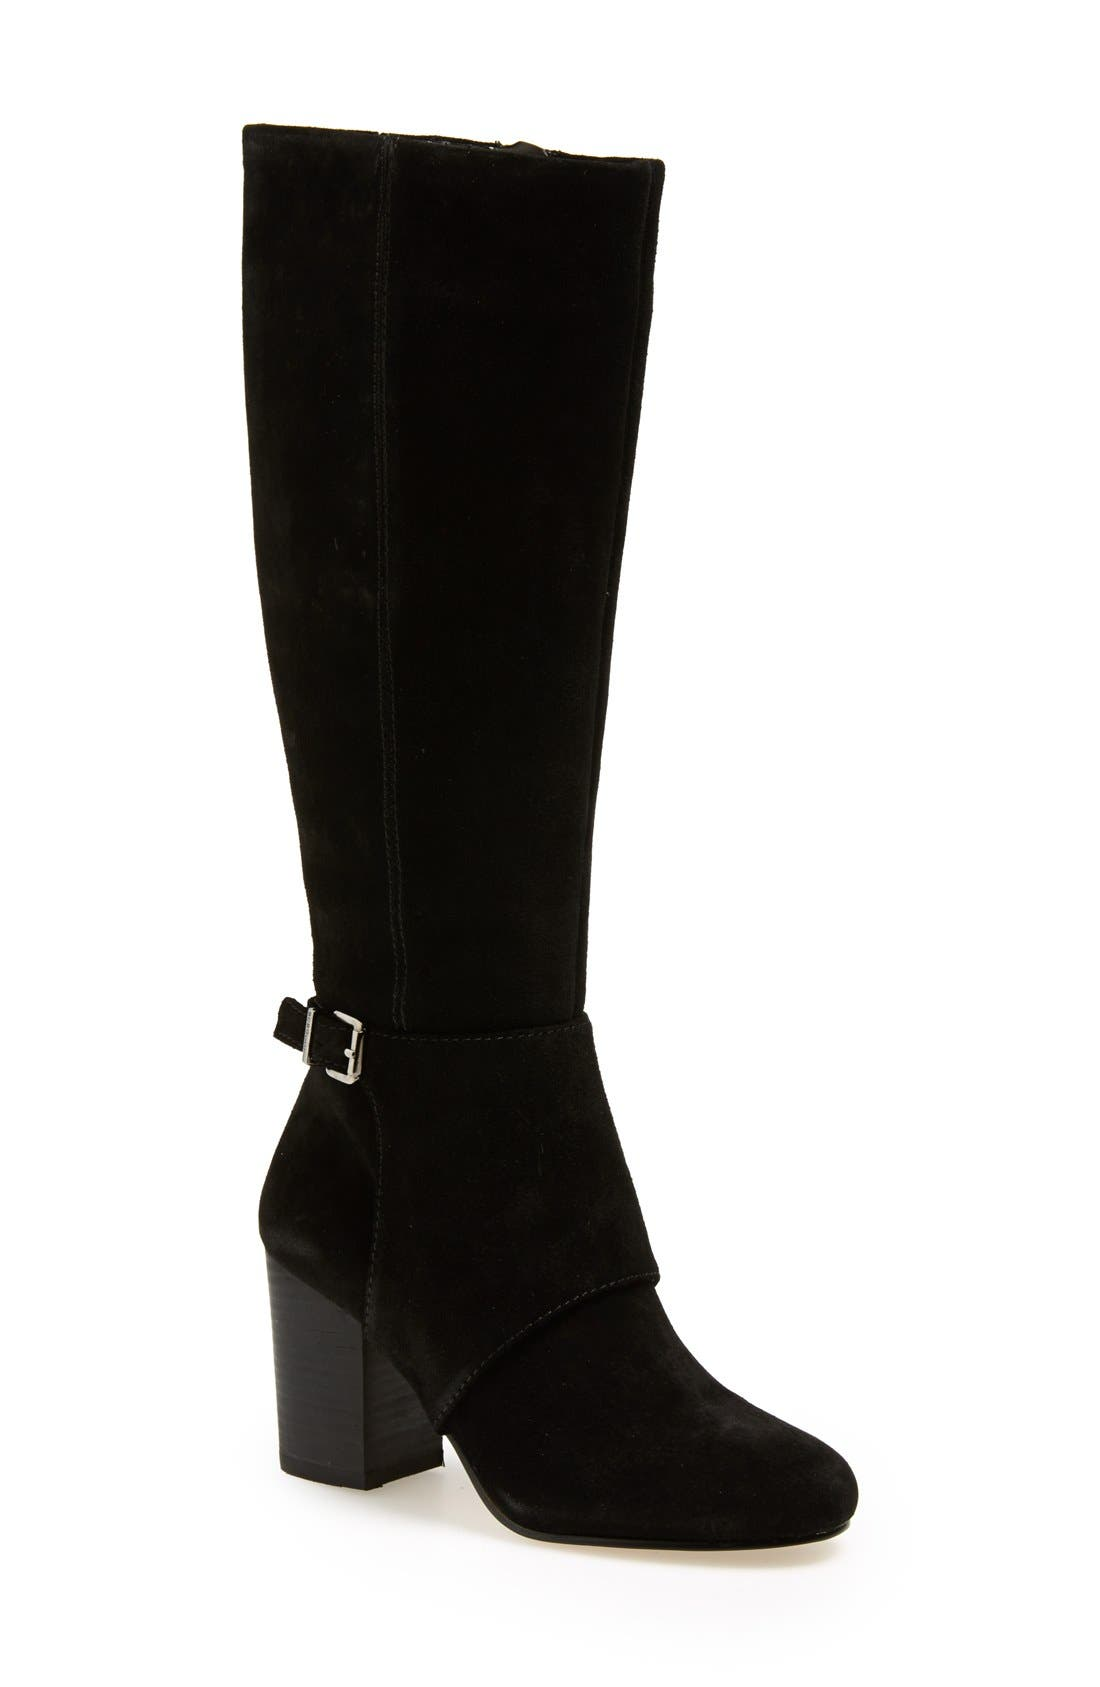 BCBGENERATION,                             'Denver' Knee High Boot,                             Main thumbnail 1, color,                             001